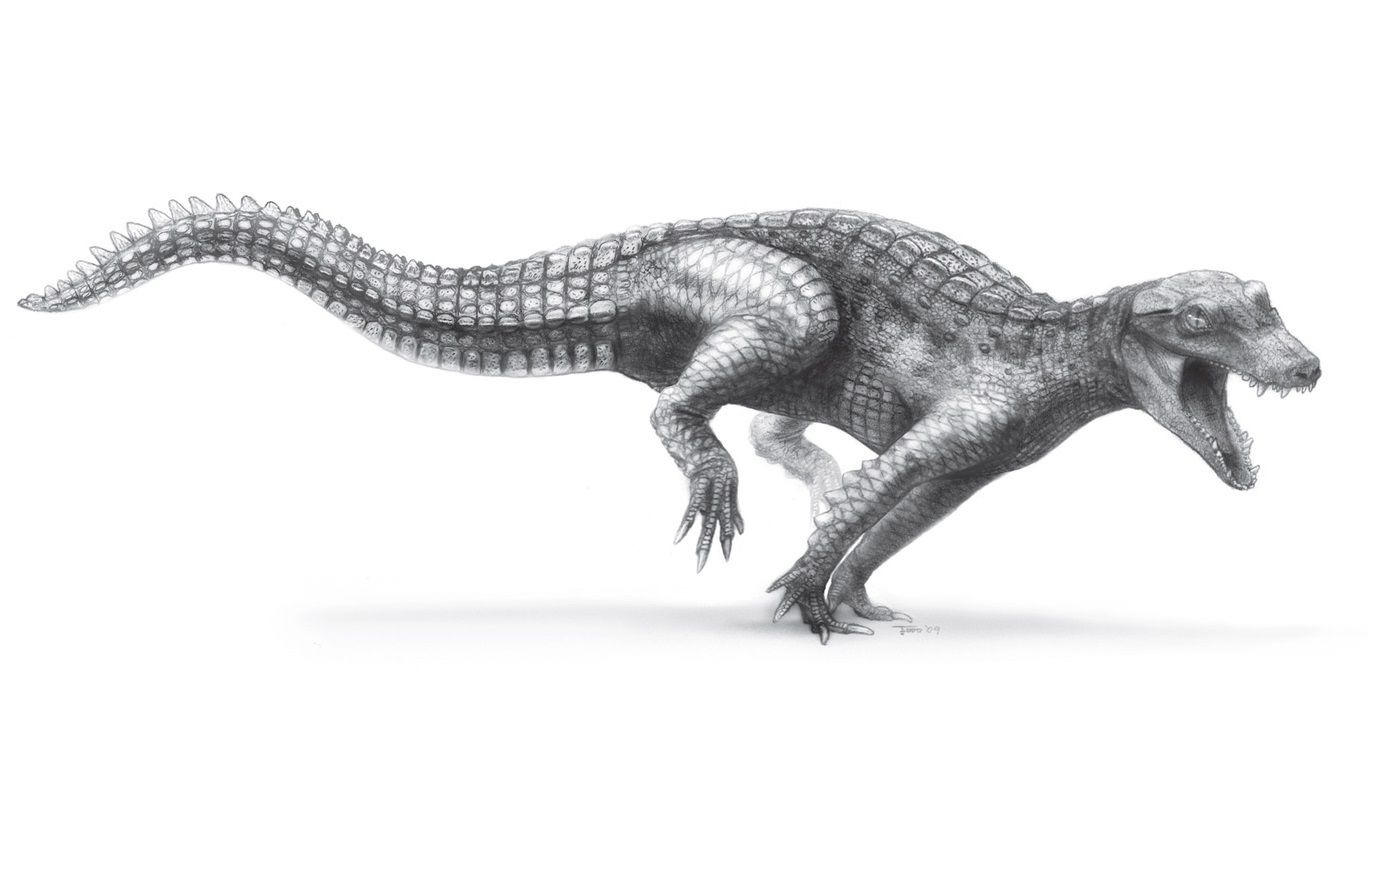 Pencil sketch of araripesuchus on a white background.